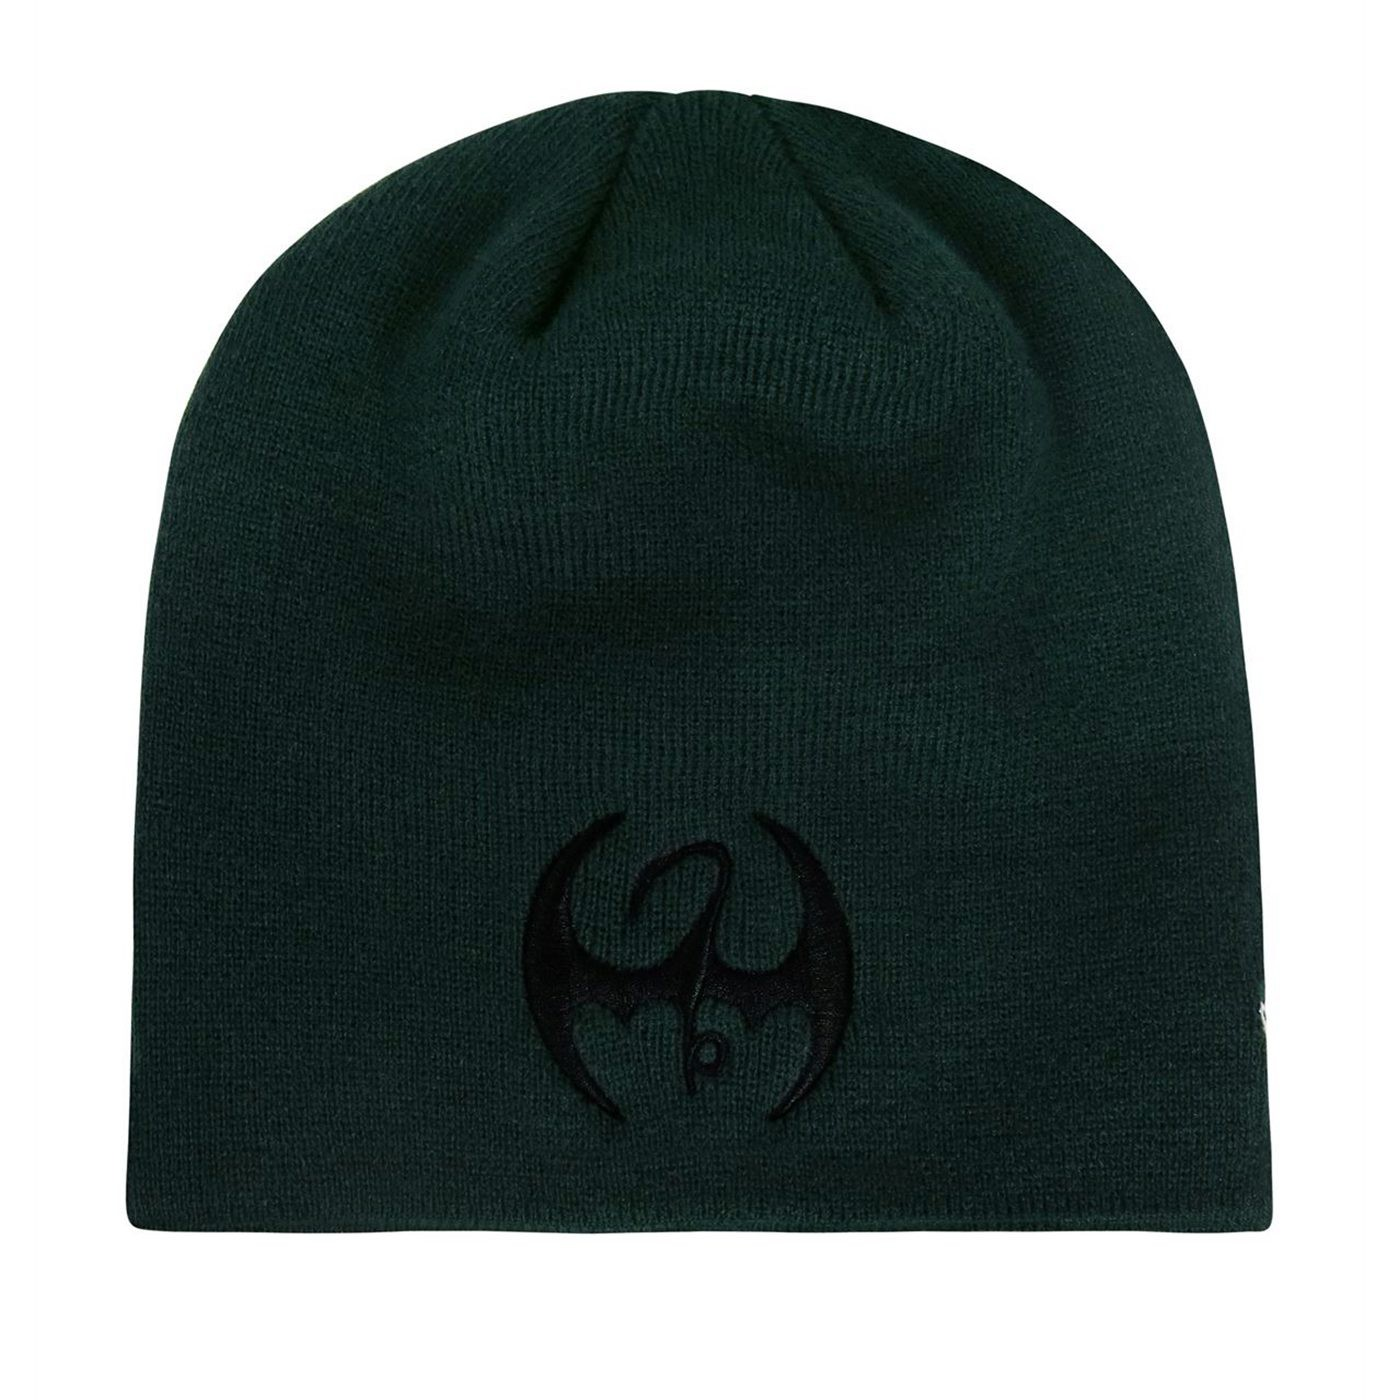 Iron Fist Black Symbol Beanie